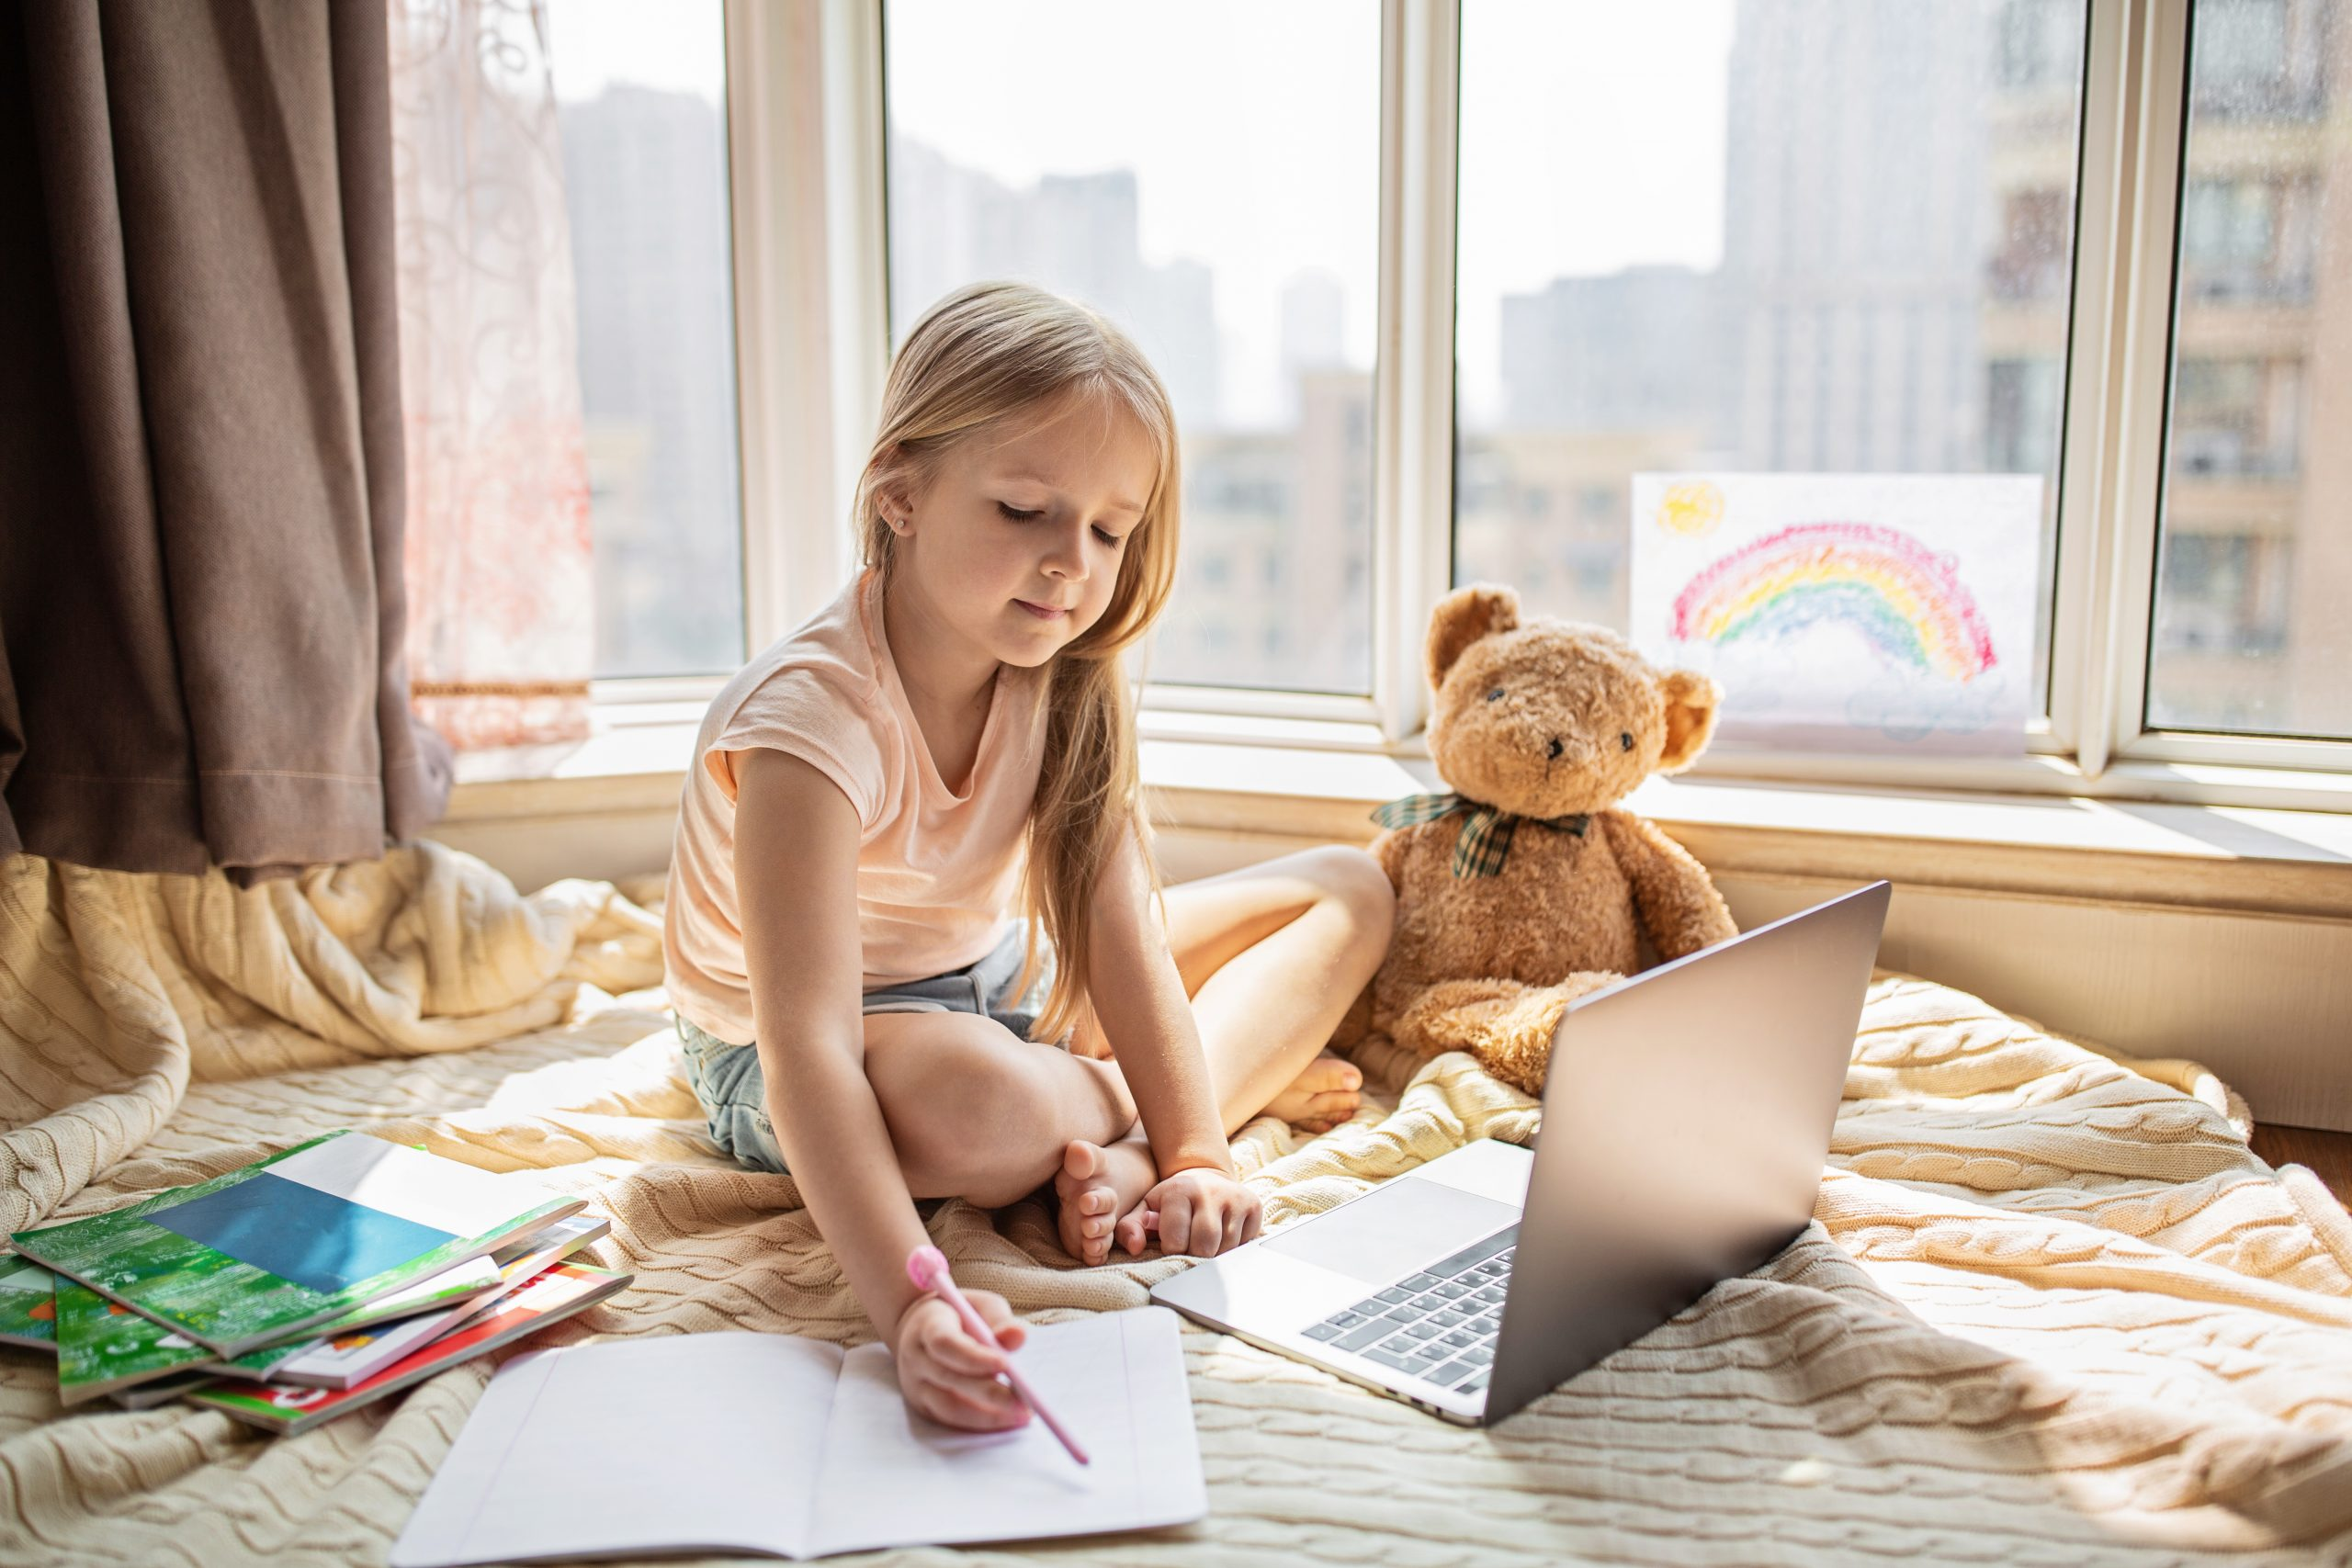 Pretty schoolgirl studying homework during her online lesson at home, social distance during quarantine covid-19, self-isolation, online education concept, home schooler. Workplace in living room.